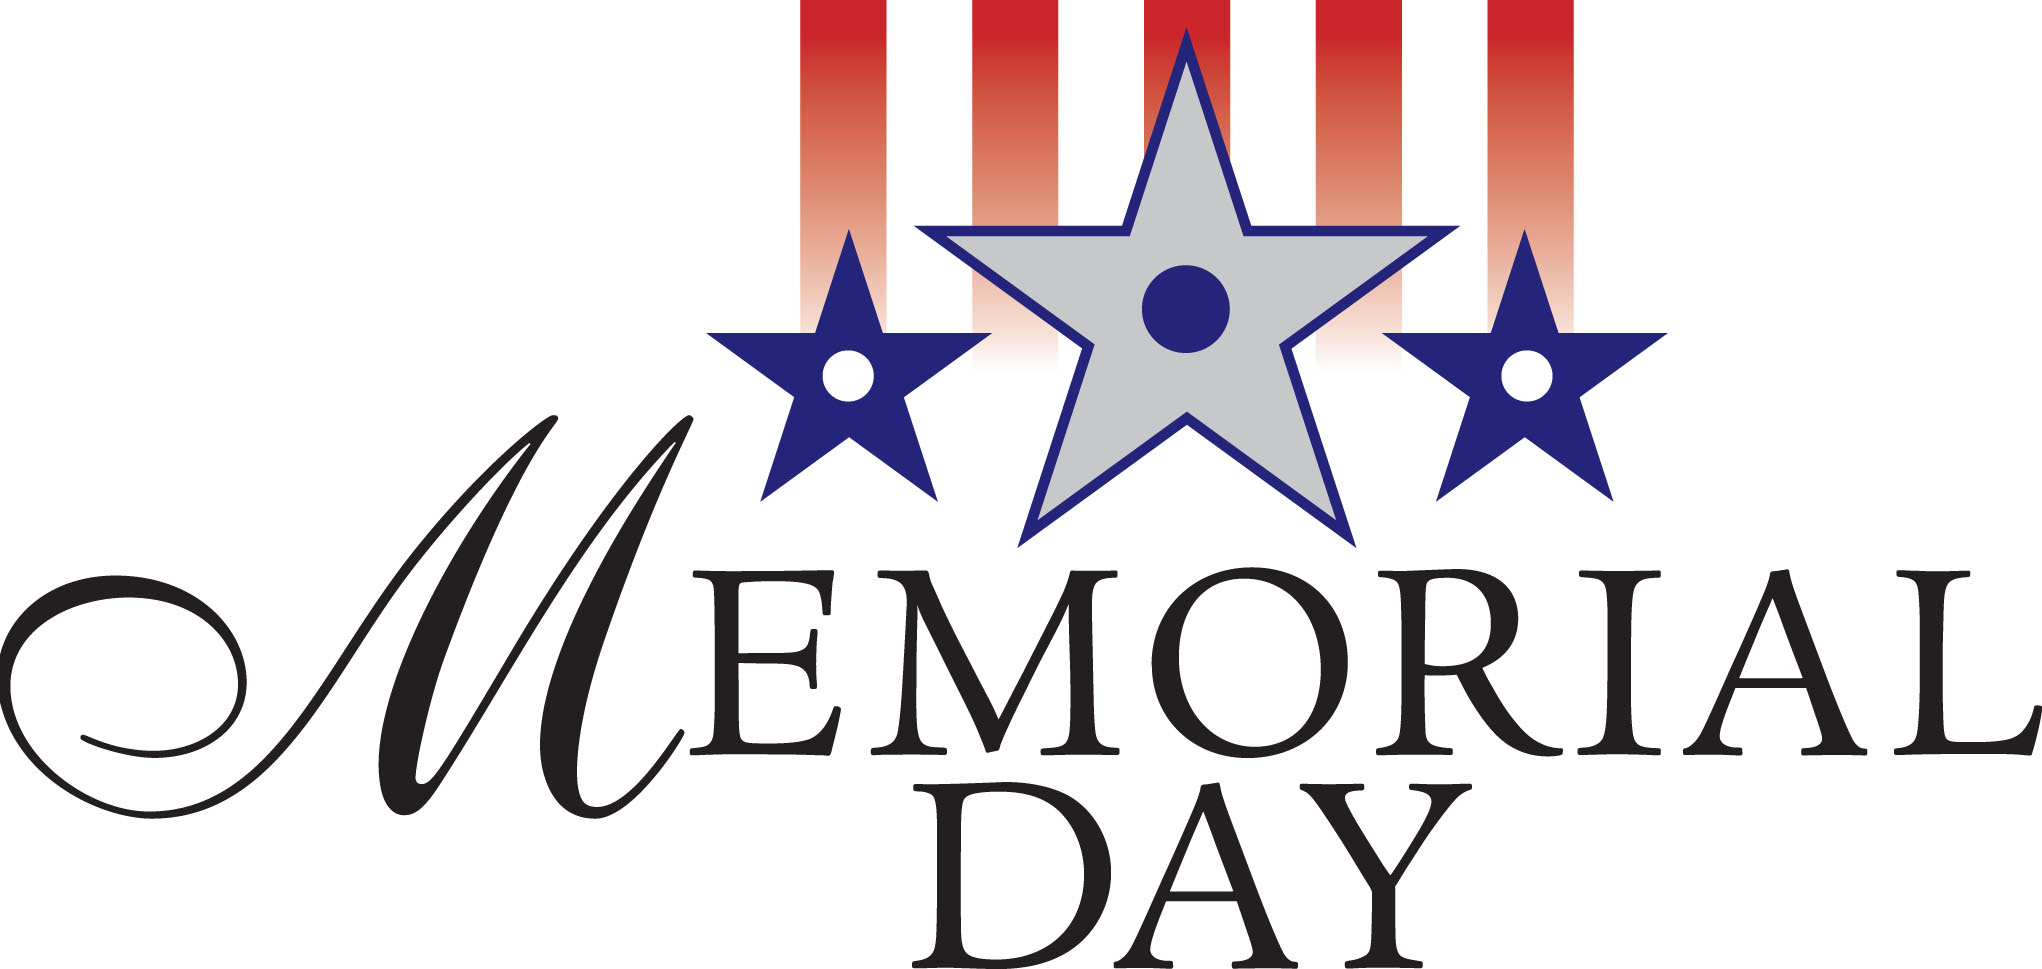 graphic about Closed Memorial Day Sign Printable known as Office environment Shut For Memorial Working day Indicator Template molekularman